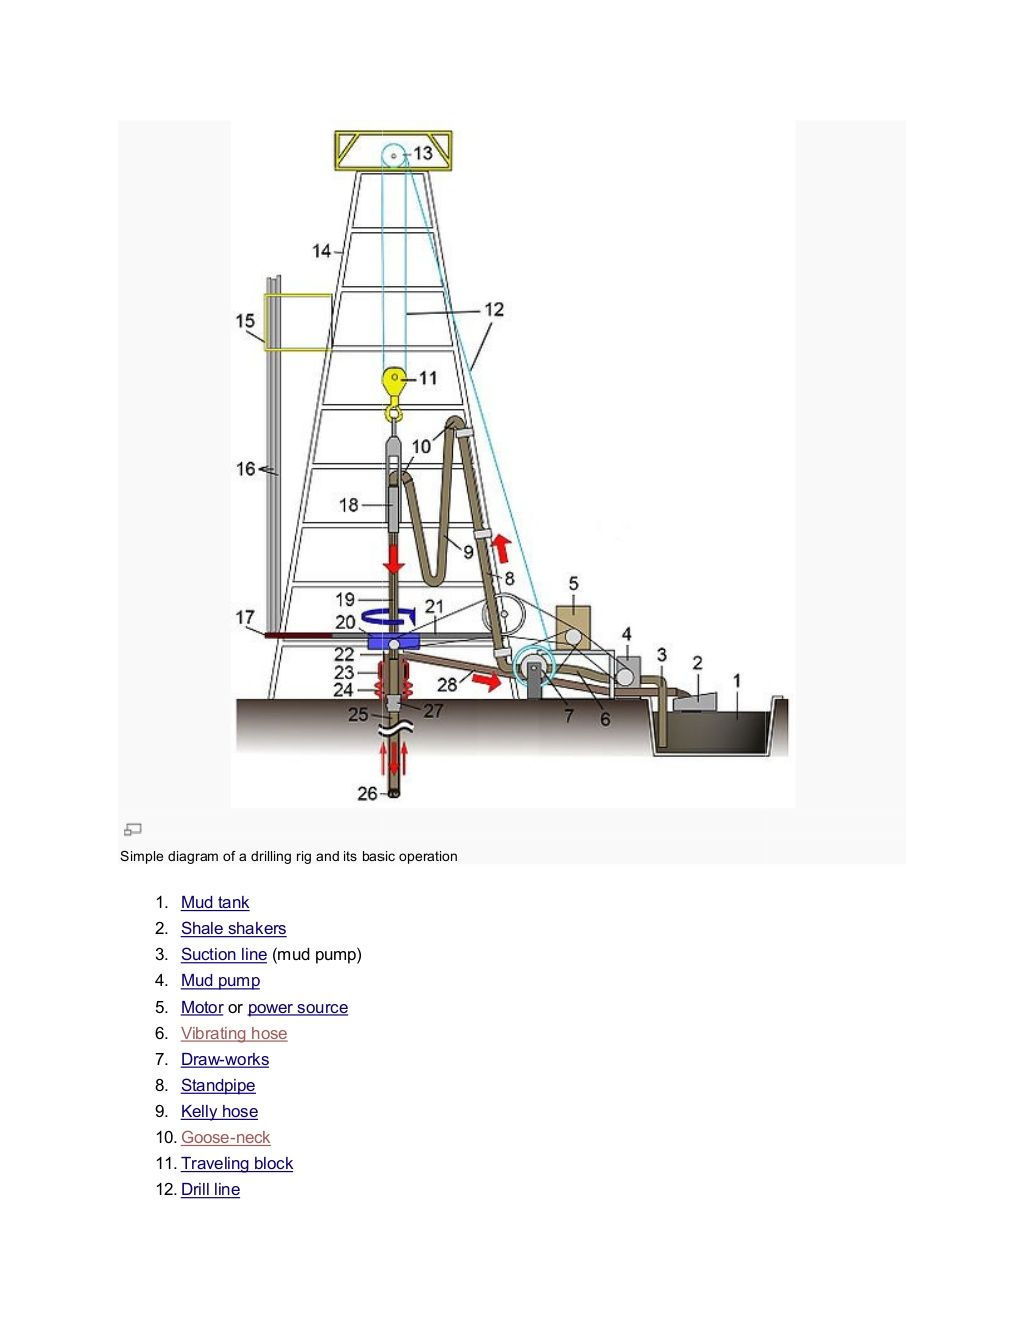 Simple diagram of a drilling rig and its basic operation 1